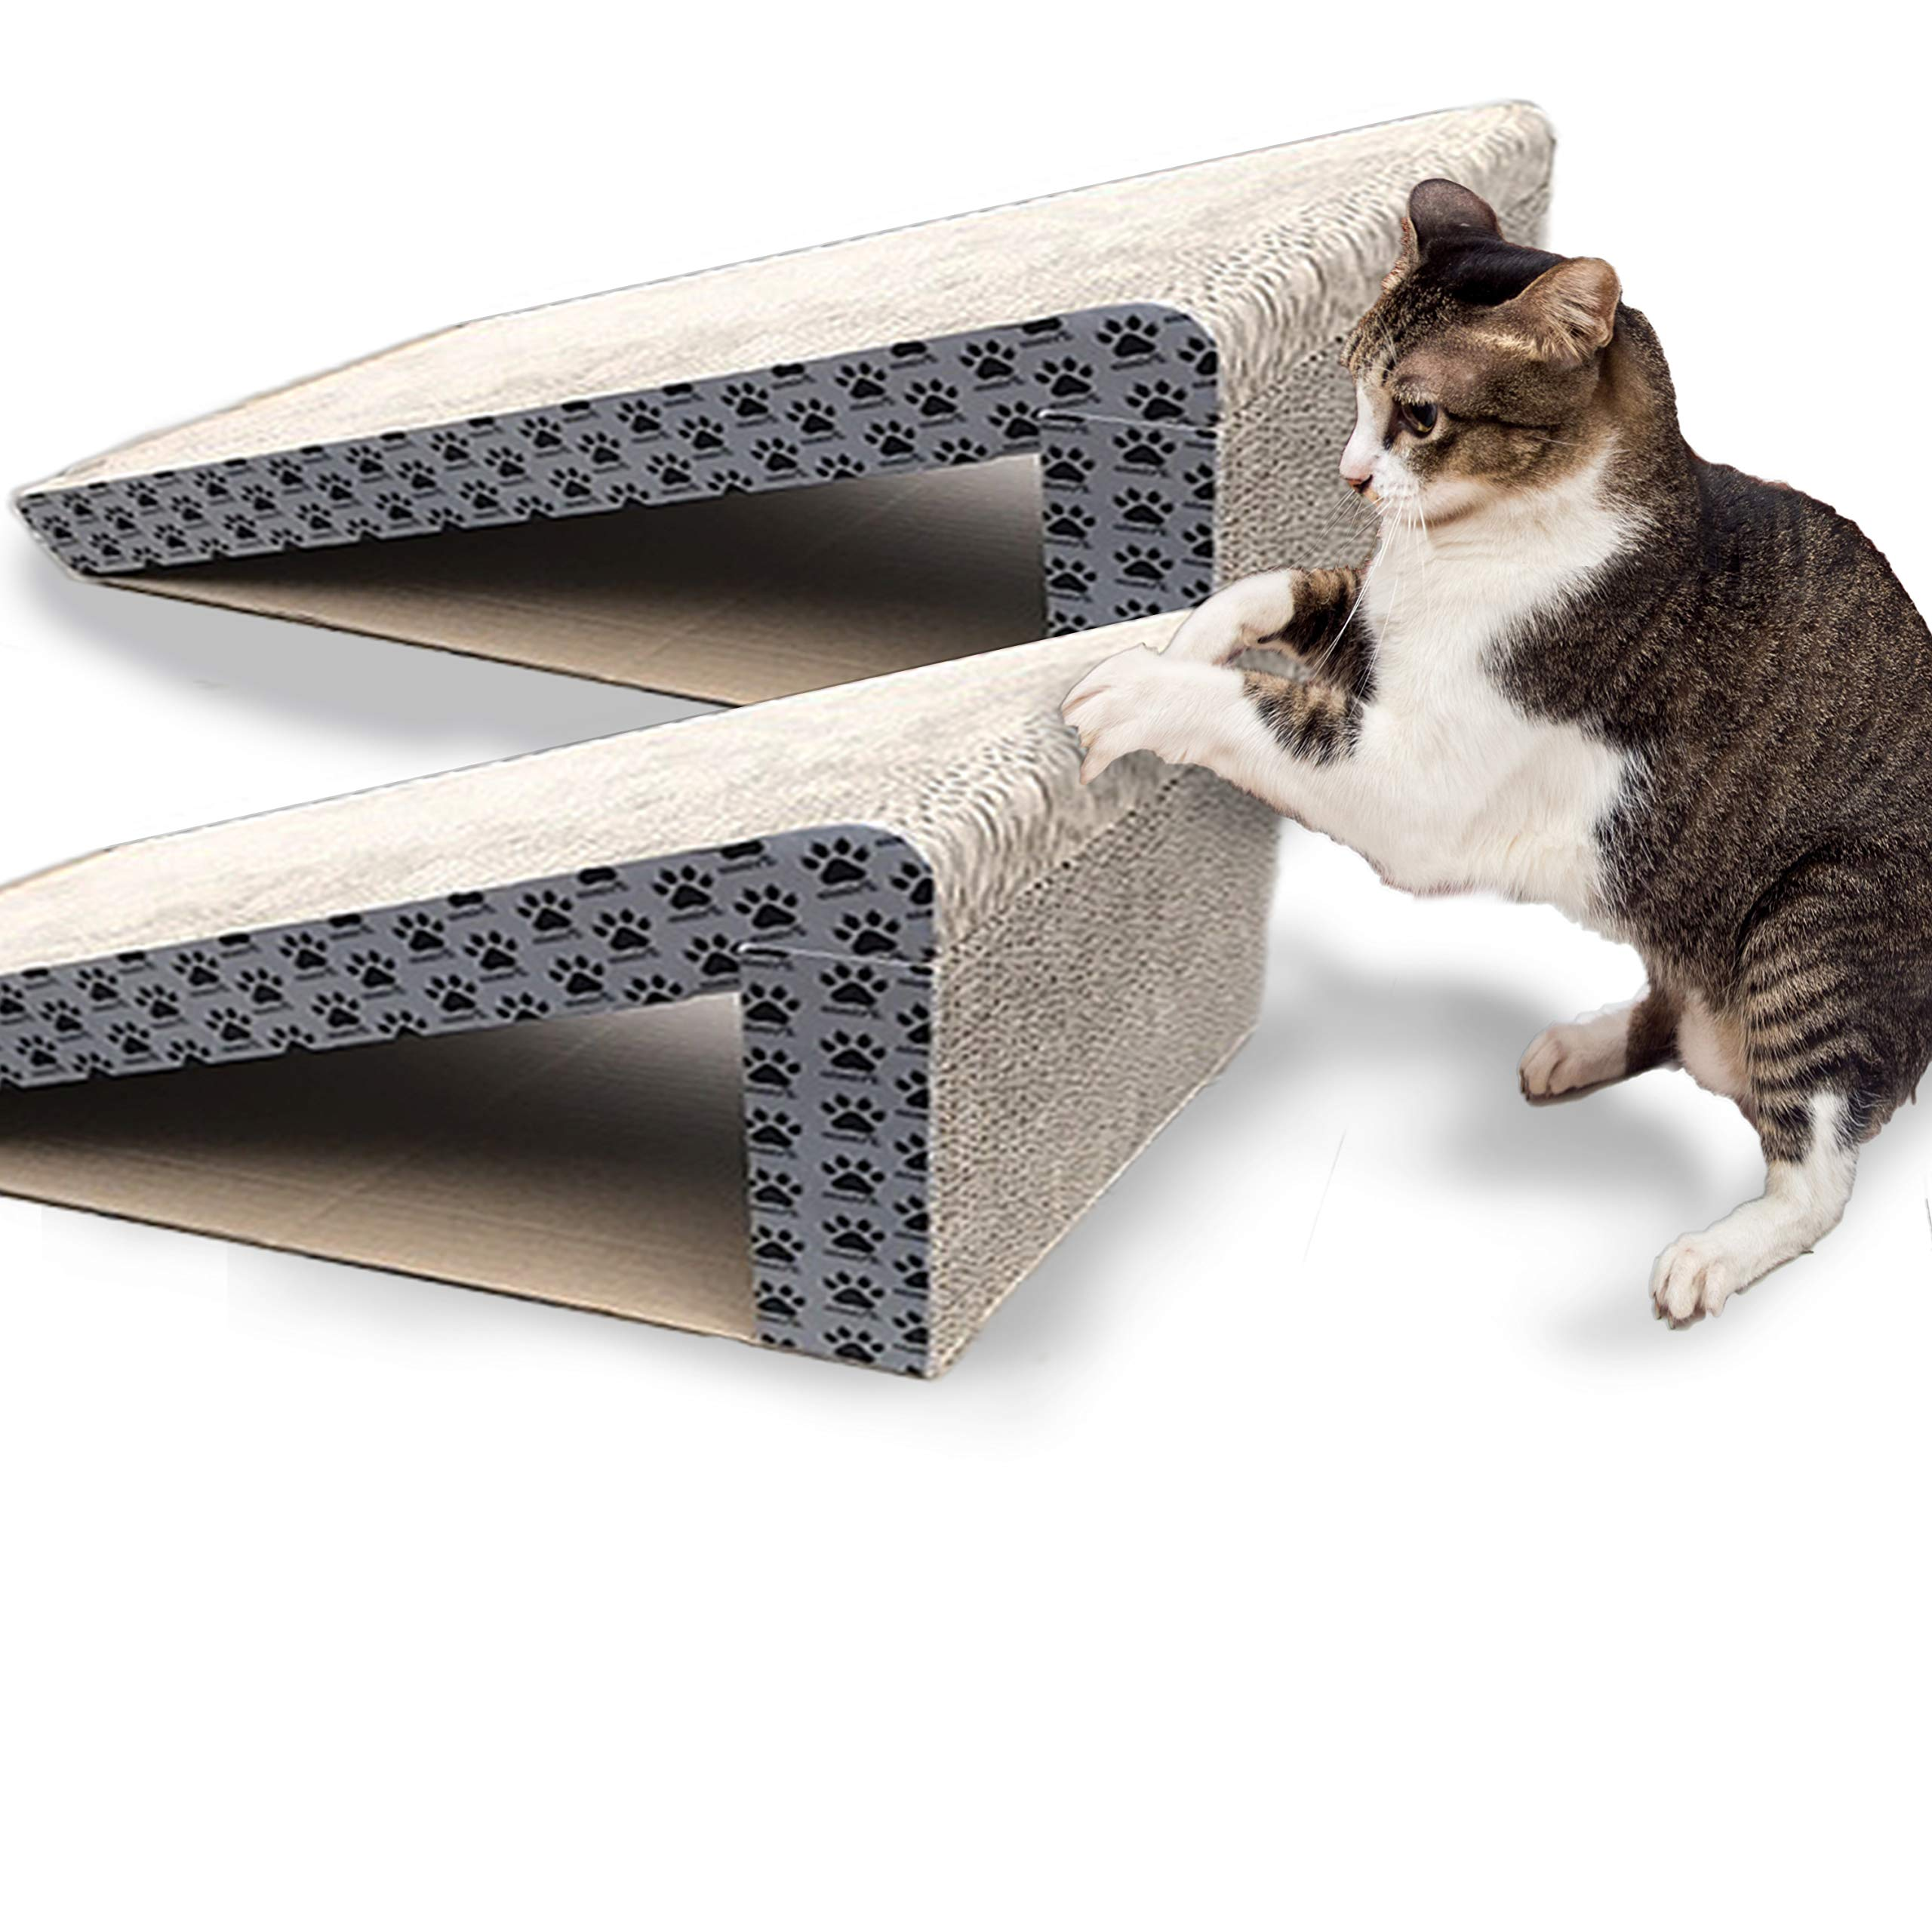 iPrimio Cat Scratch Ramps (2 Ramps for One Price) - Foldable for Travel and Easy Storage - Great for Cats Playing Over, Laying, and Scratching - Patent Pending Design (2 Pack) by iPrimio